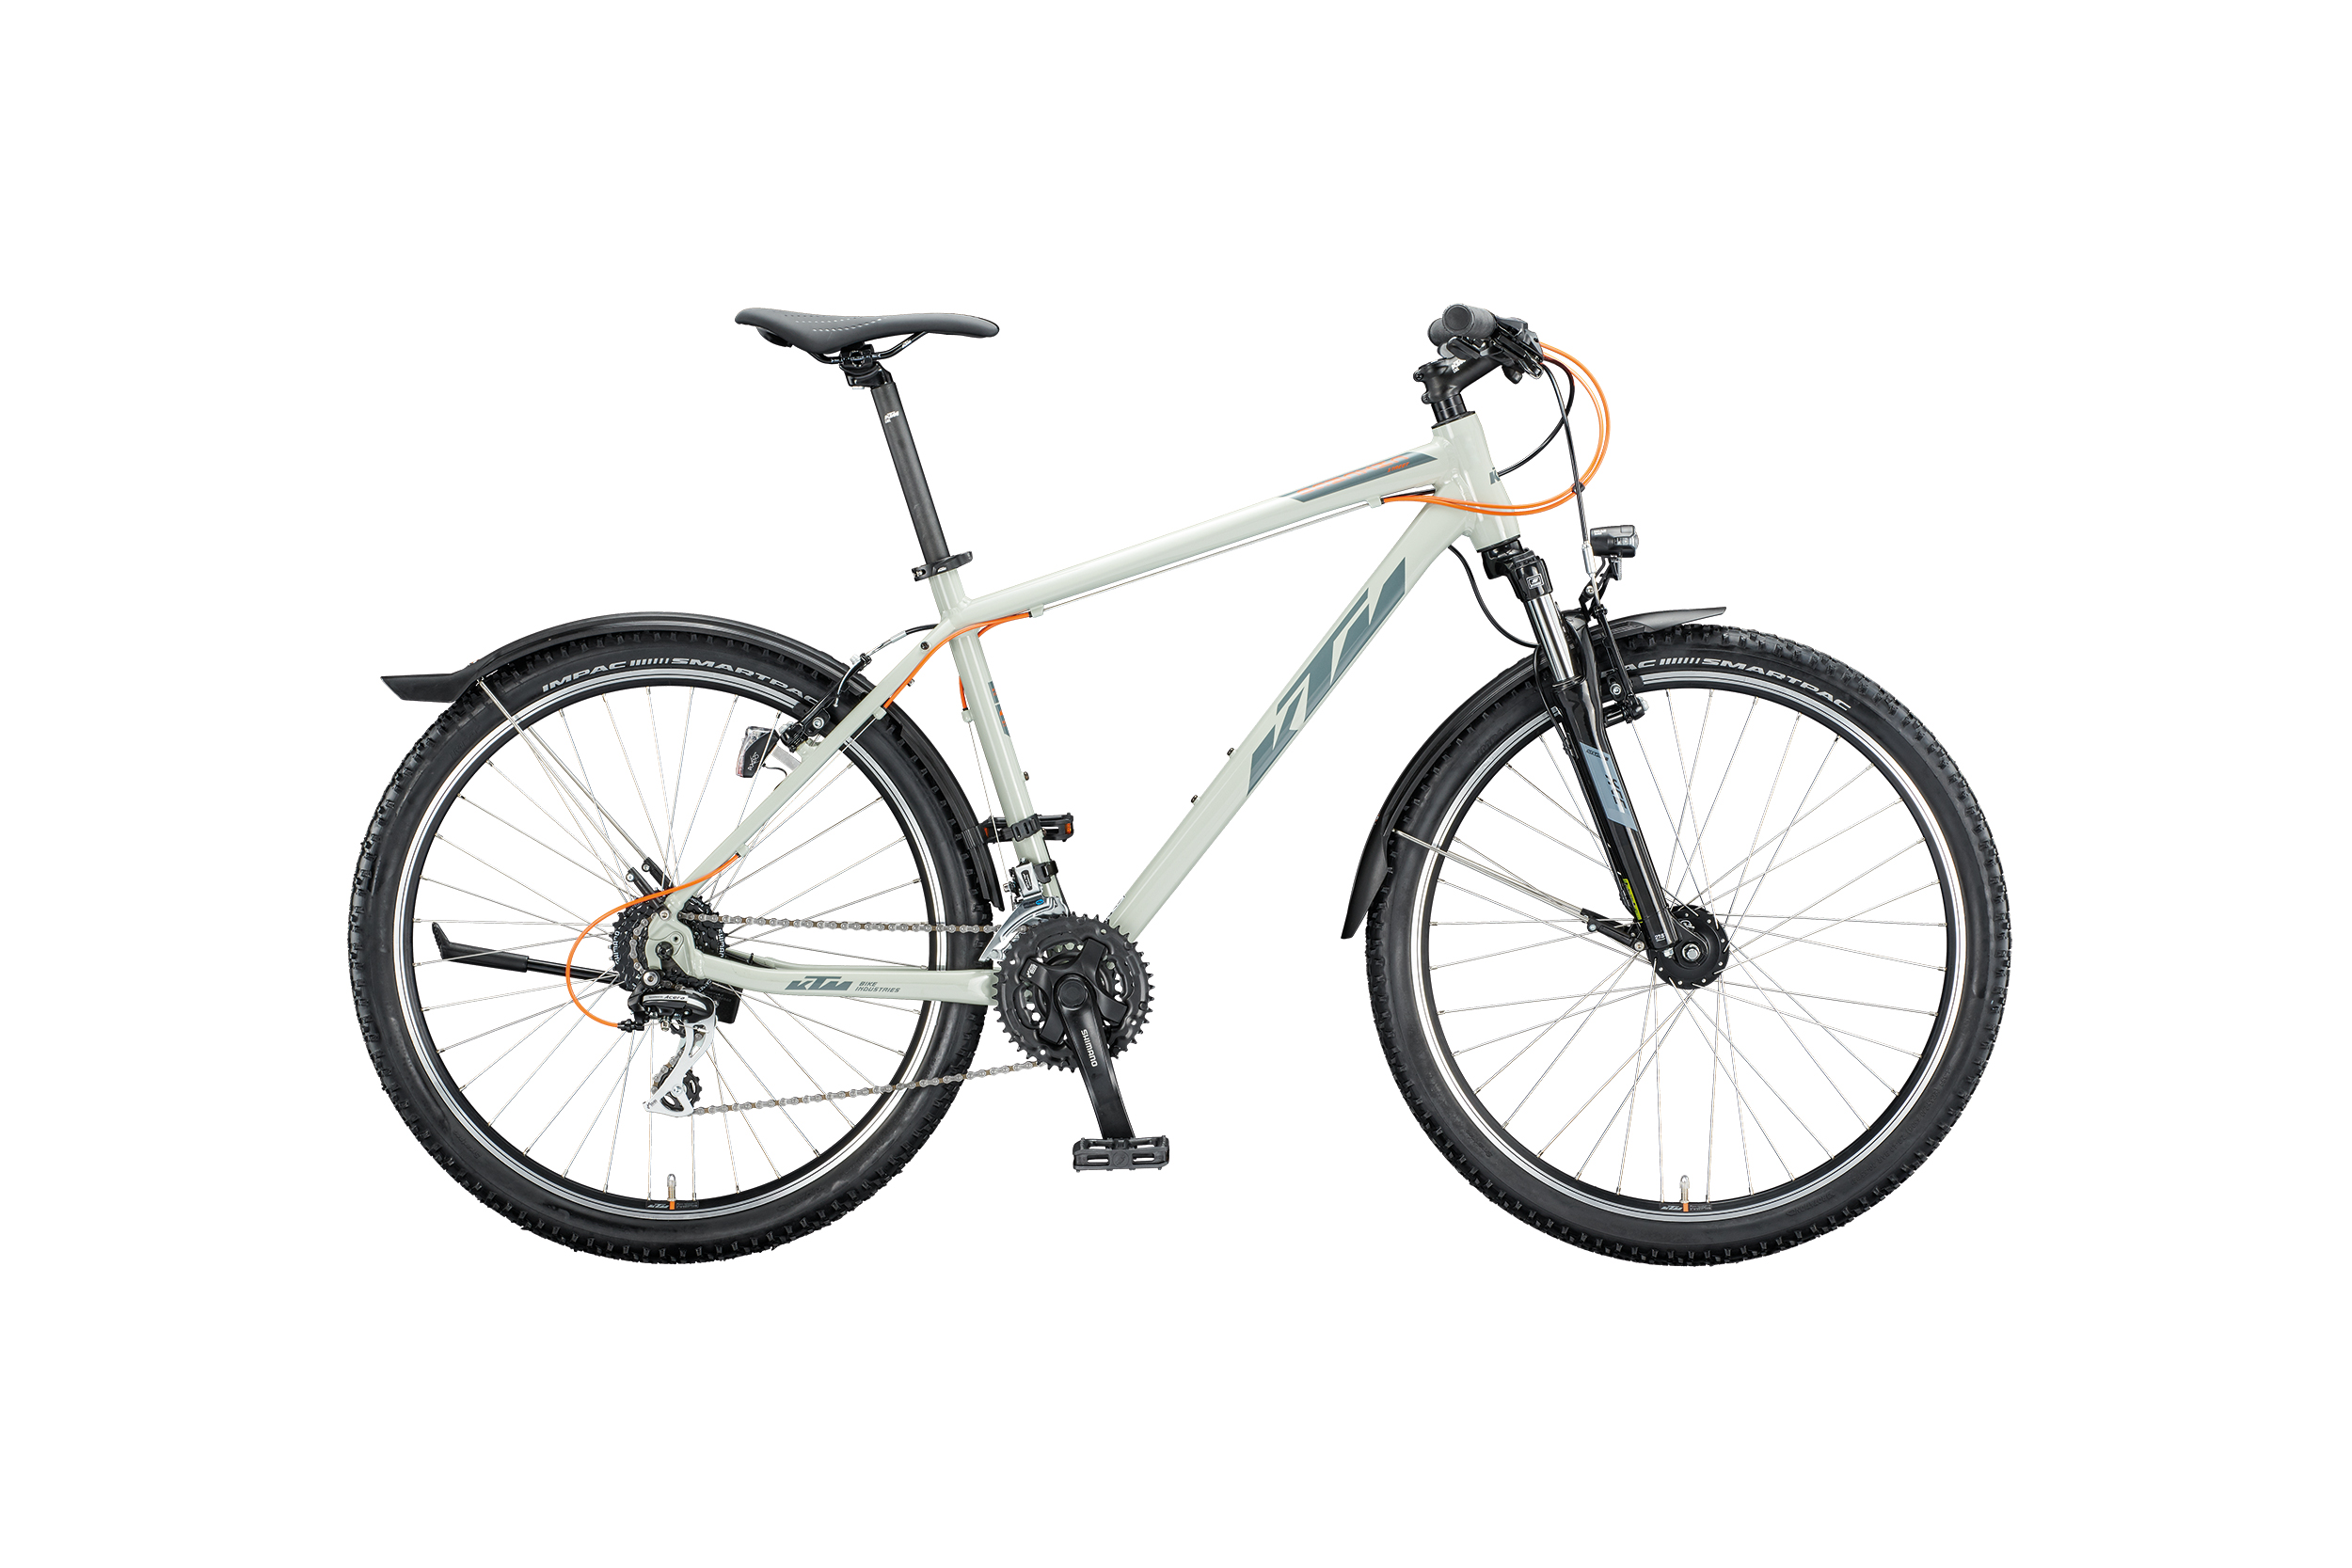 KTM CHICAGO STREET 27 croc (grey orange) 2020